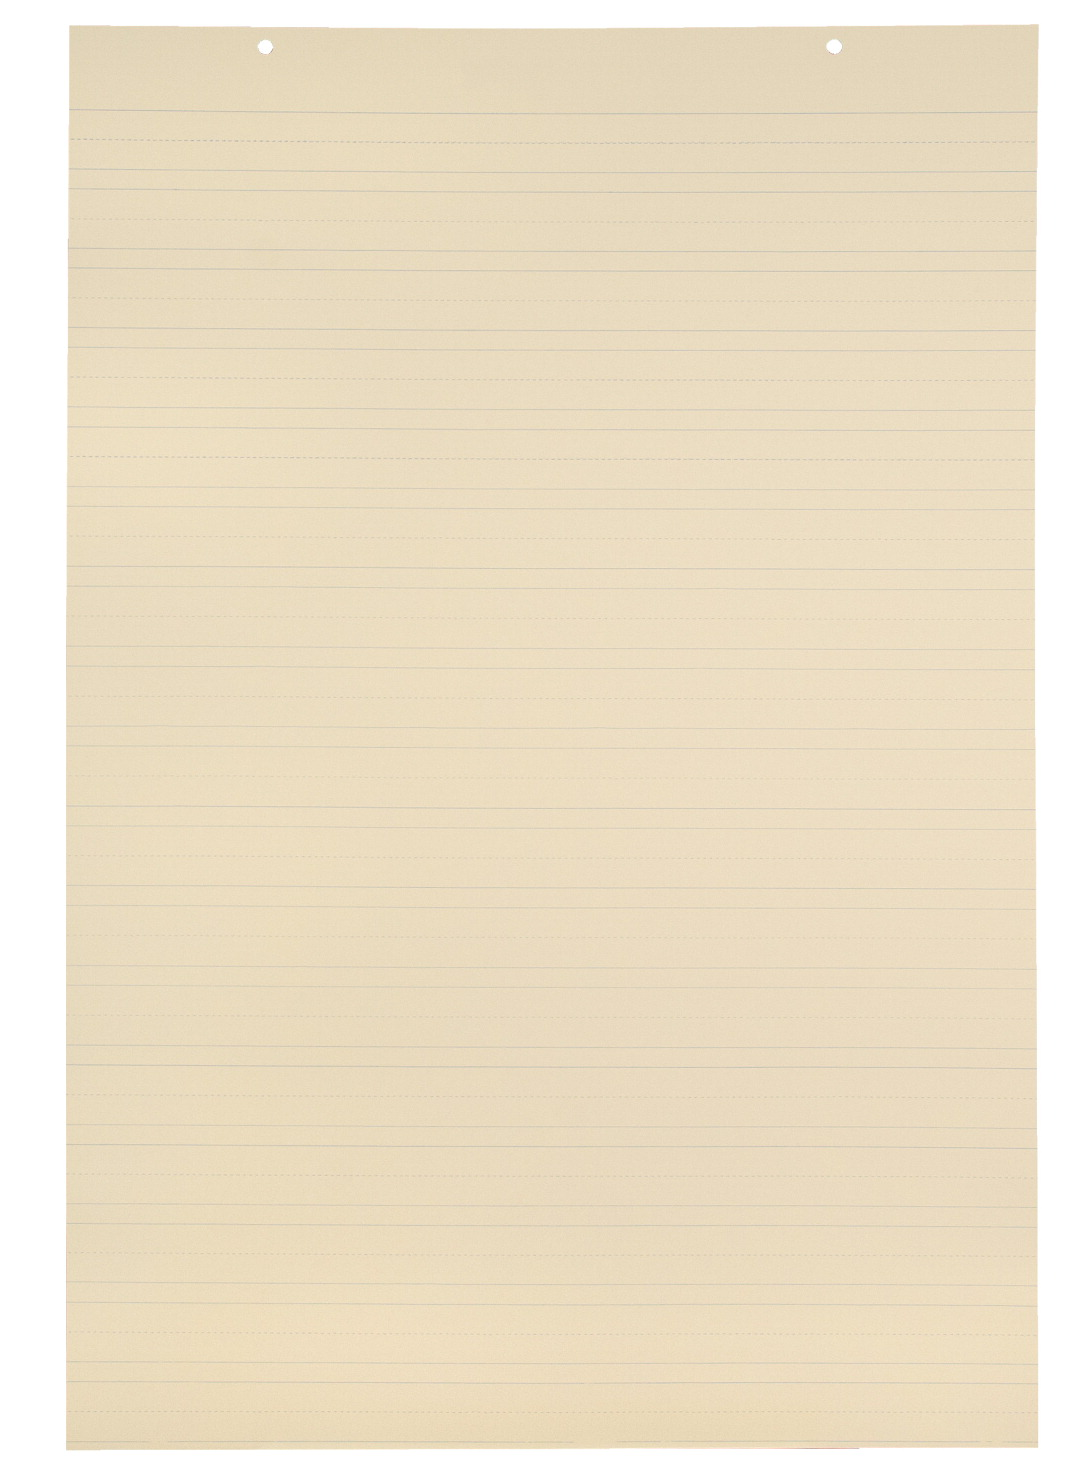 School Smart Jumbo Manila Tag Ruled Chart Paper 36 X 24 Inches Pack Of 100 Specialty Marketplace